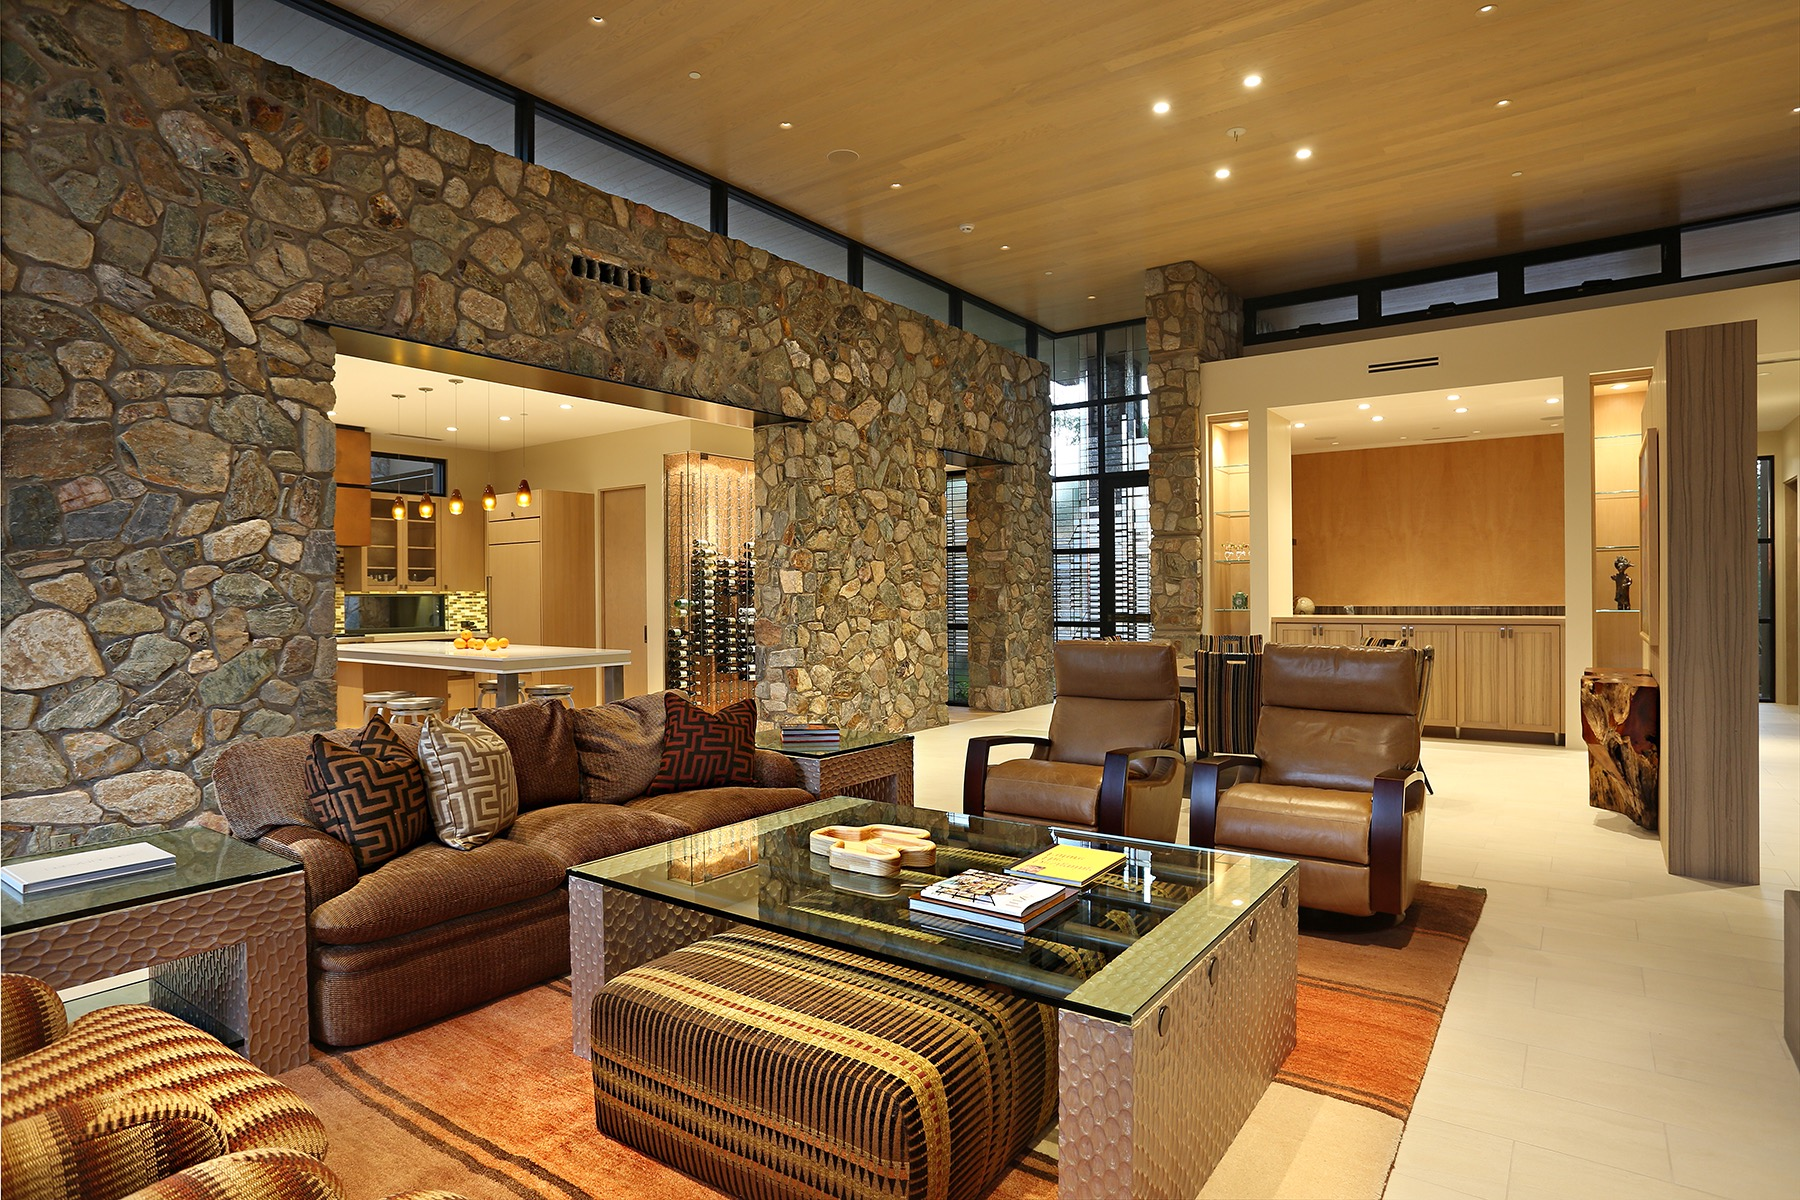 Stone Accent Wall Decor For Modern Southwestern Living Room (Image 25 of 30)